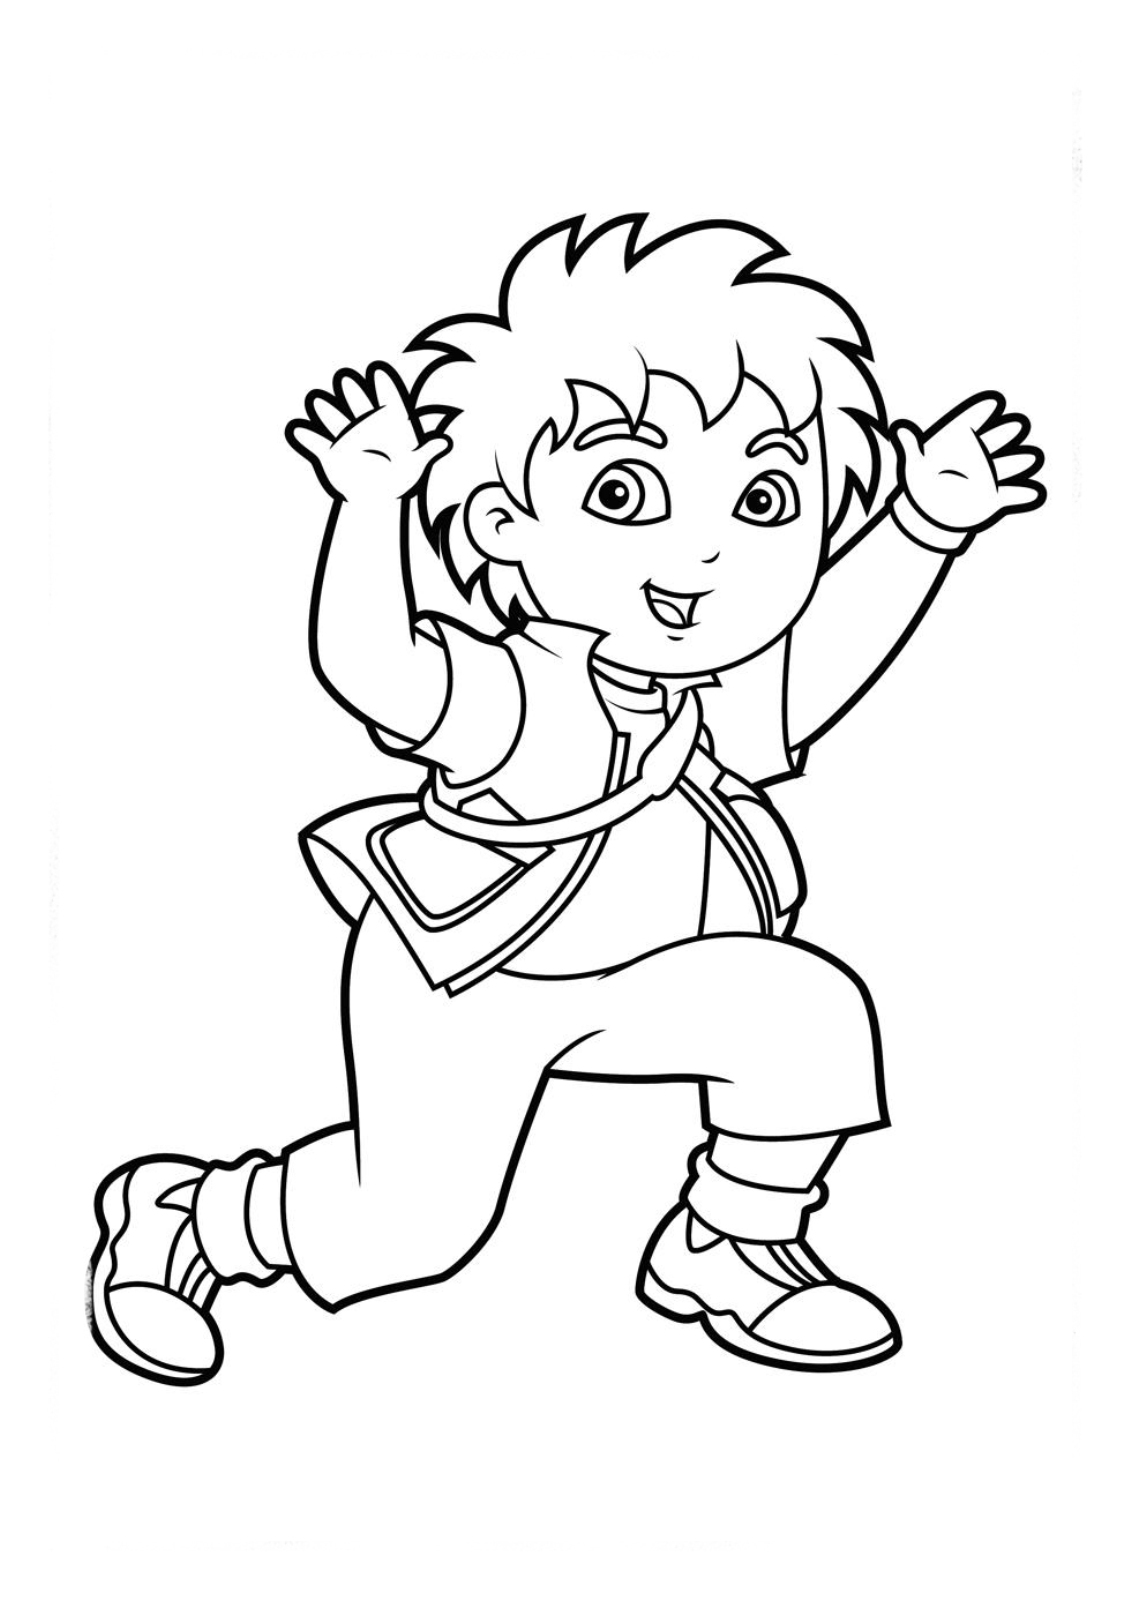 printalbe coloring pages - photo#6